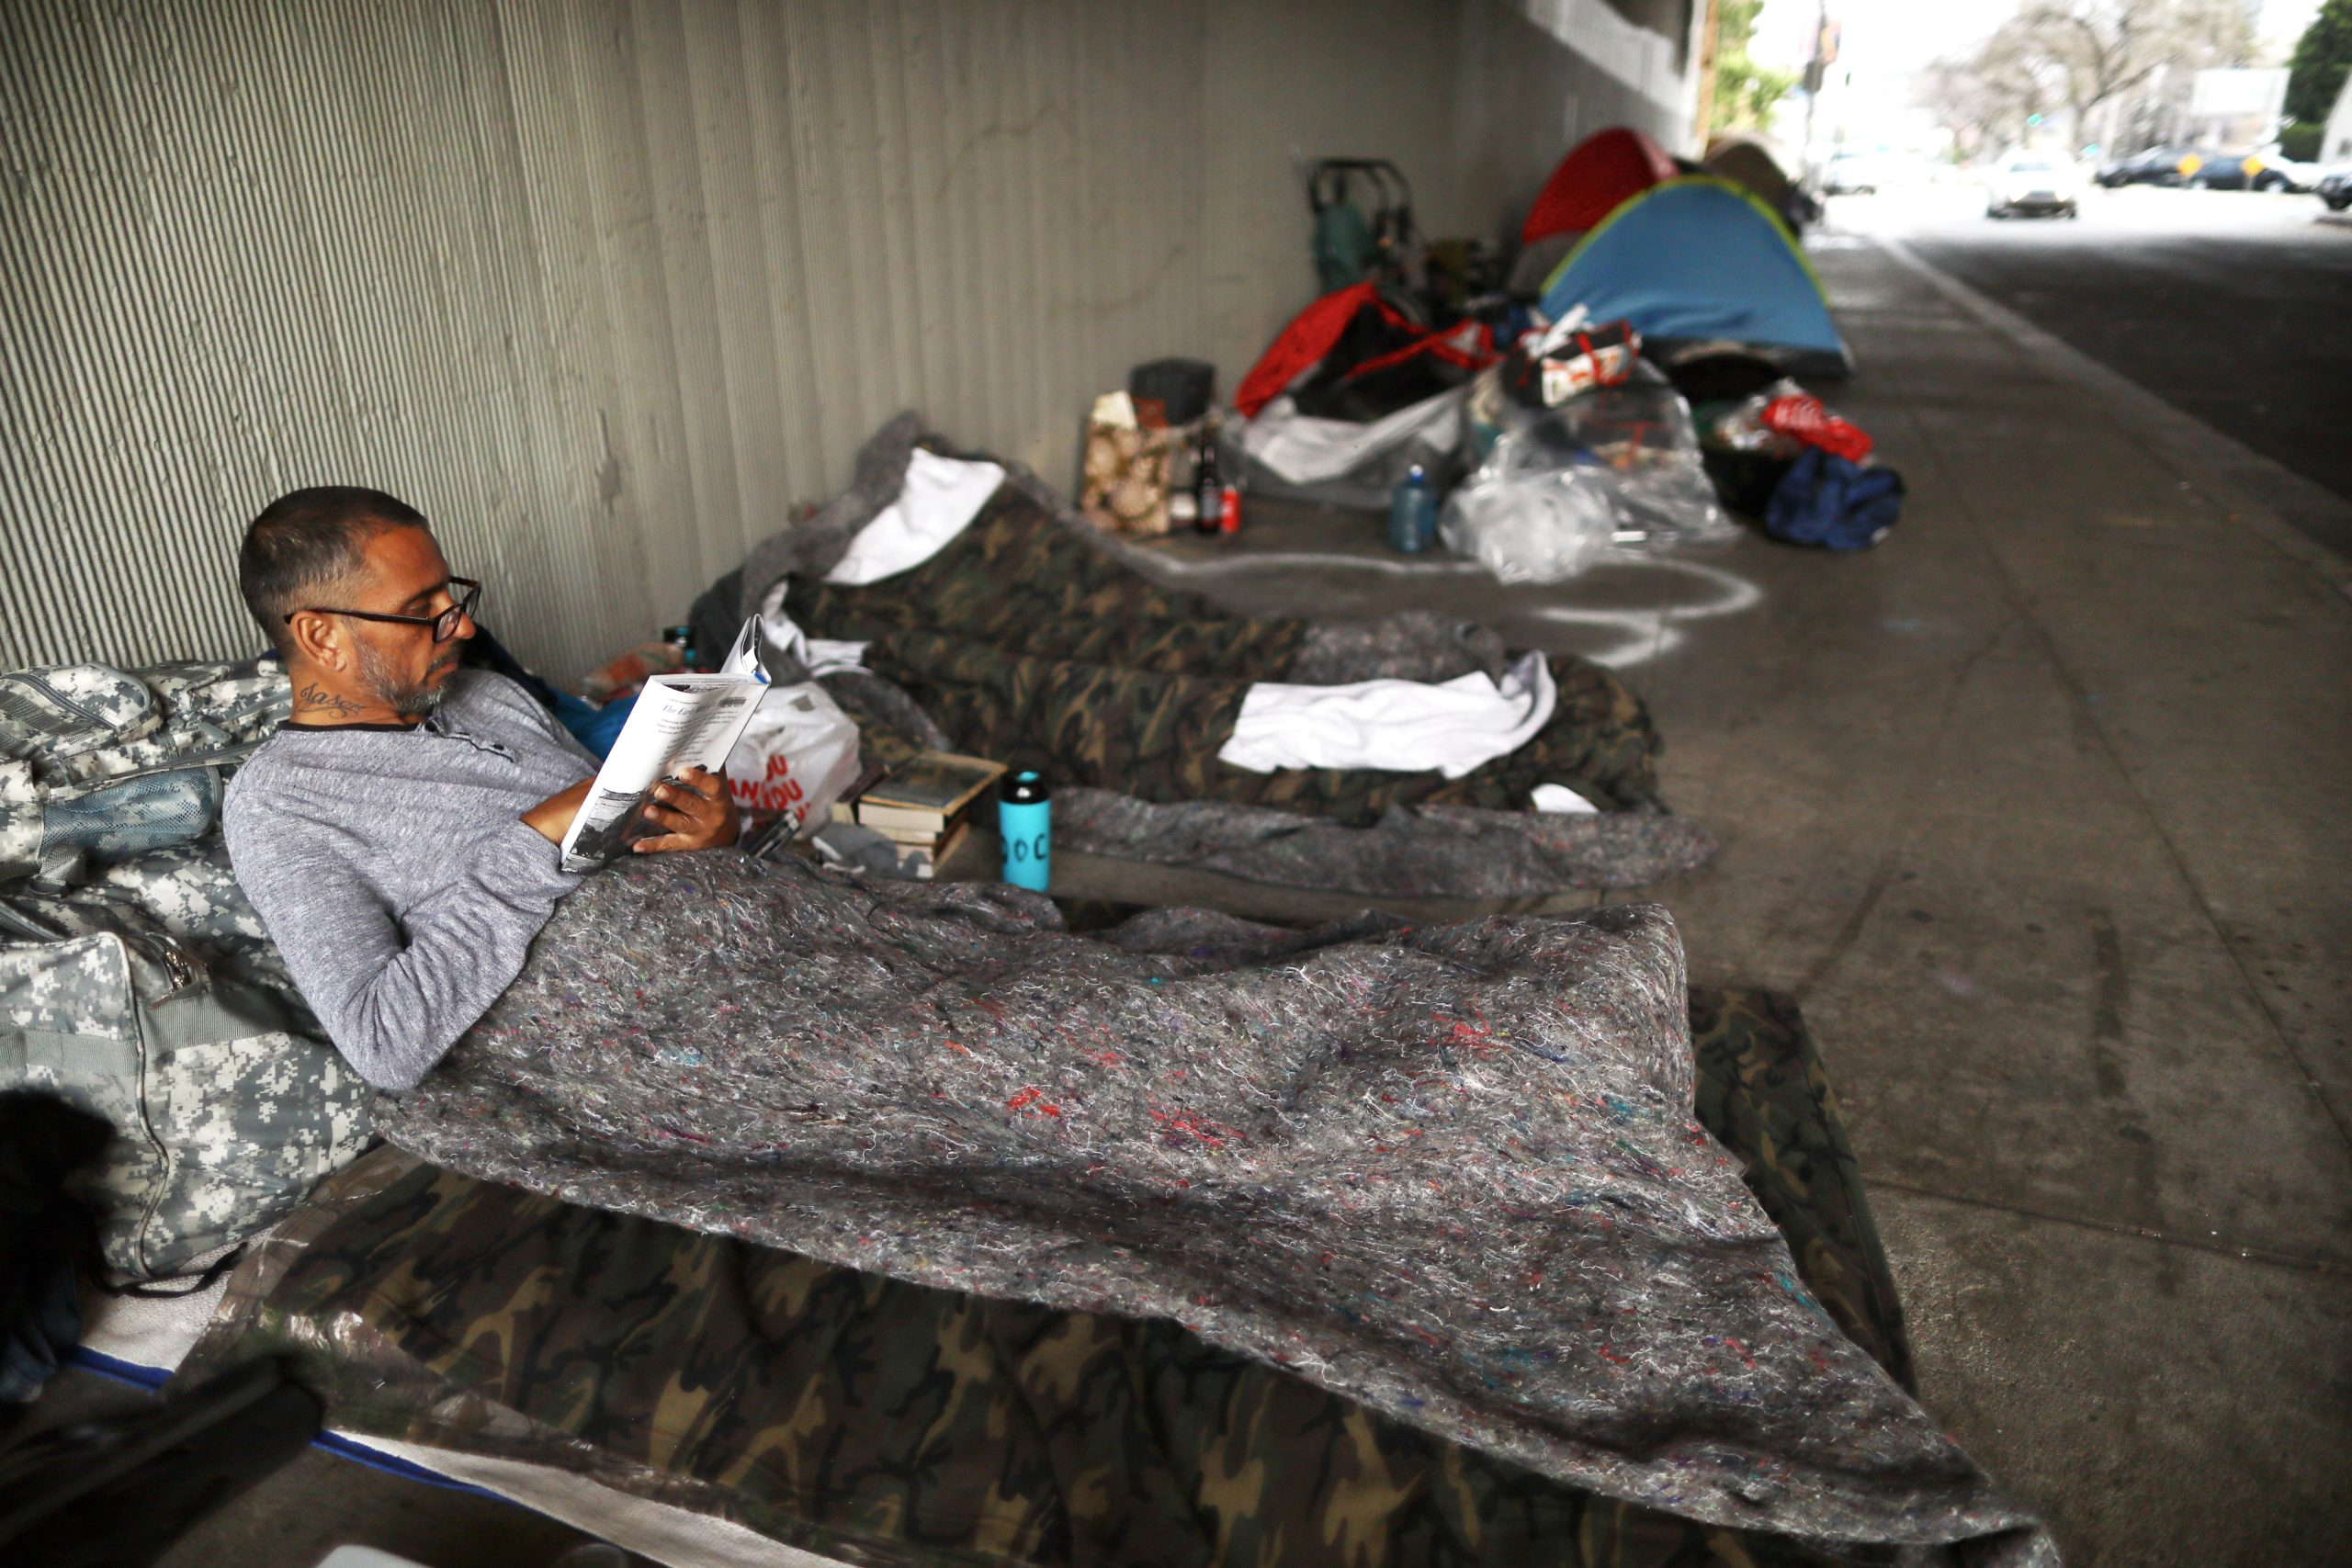 Travis Stanley, who said he has been homeless for three months and is a U.S. Navy veteran, reads on donated bedding where he normally sleeps beneath an overpass on June 5, 2019 in Los Angeles, California. The homeless population count in Los Angeles County leaped 12 percent in the past year to almost 59,000, according to officials. A lack of affordable housing in Los Angeles is the primary factor driving the spike in homelessness, according to Los Angeles Mayor Eric Garcetti. (Photo by Mario Tama/Getty Images)